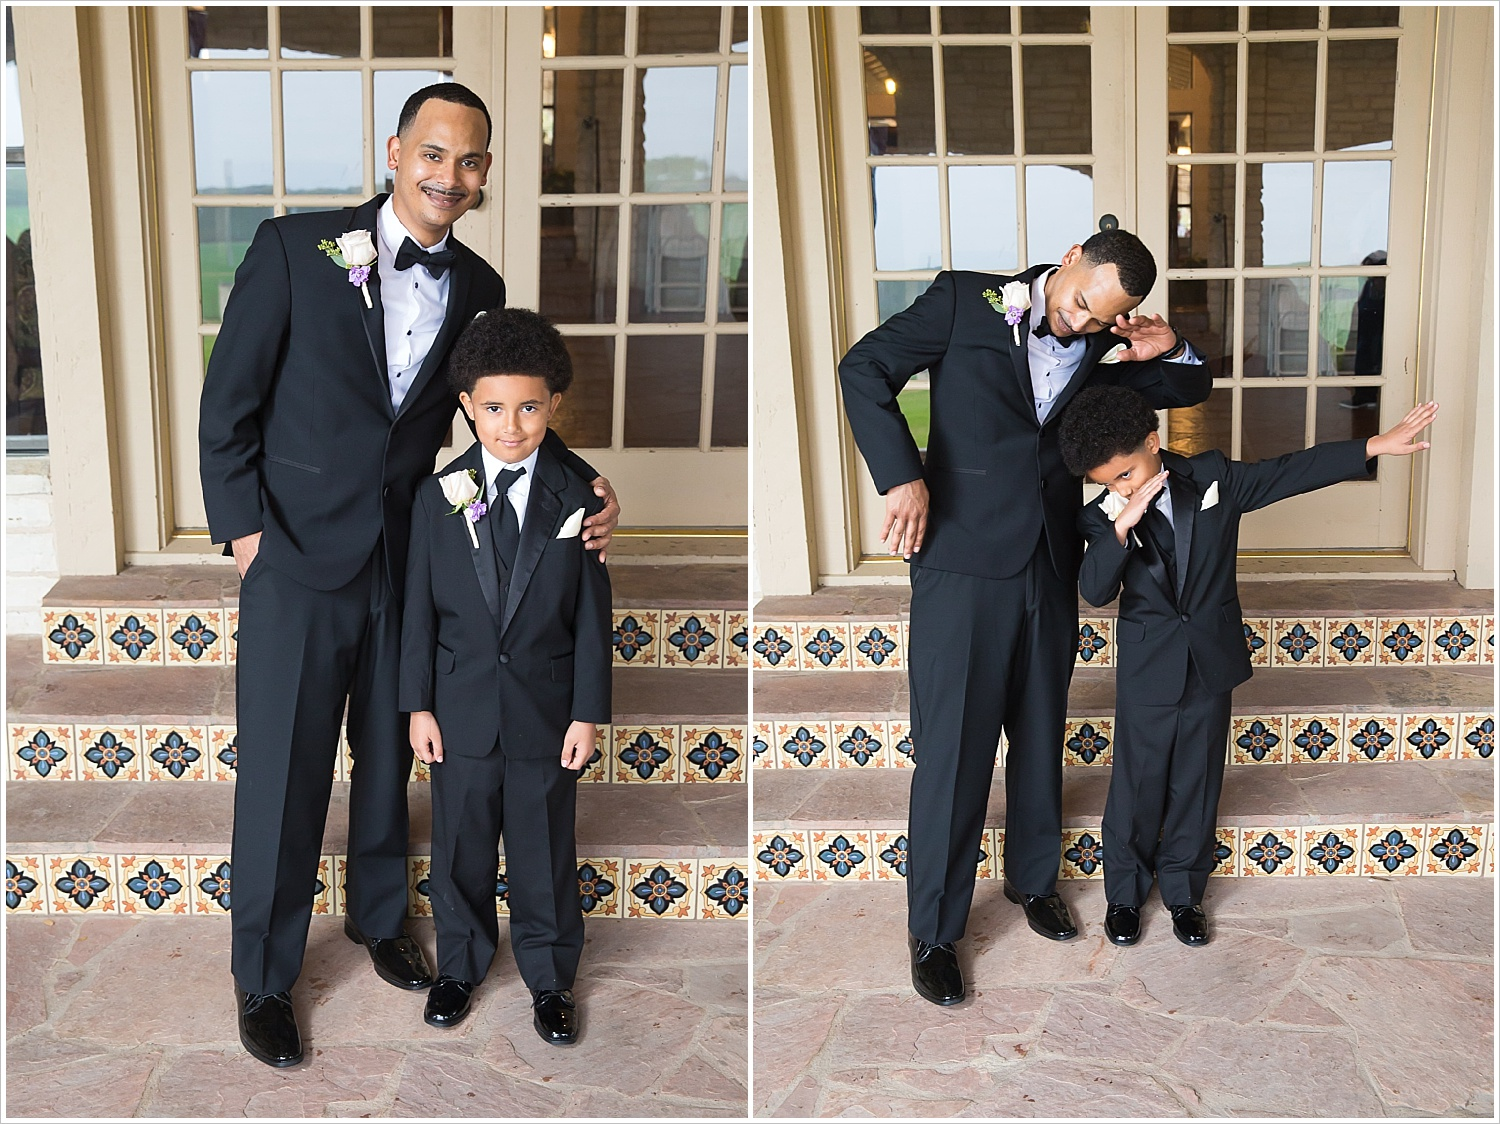 Groom and his son, the ring bearer, pose and dab before ceremony